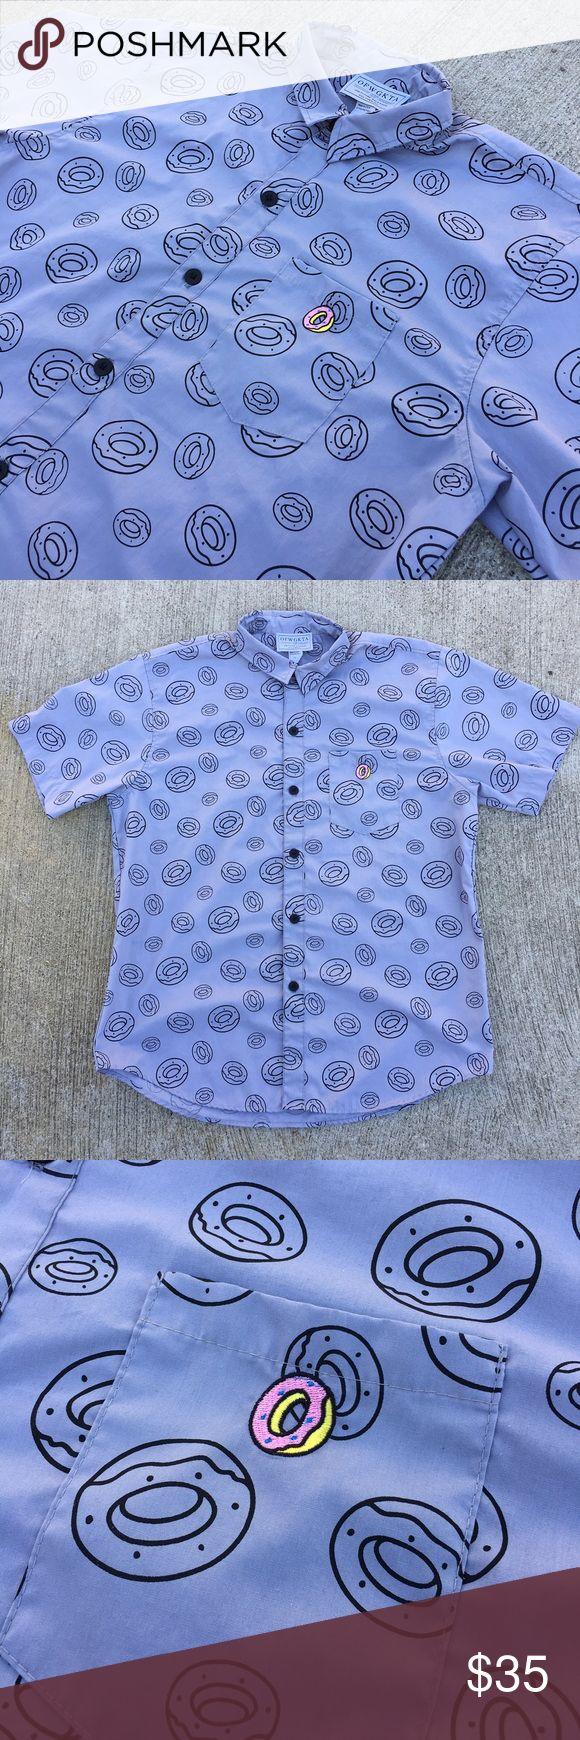 Odd Future Donut Shirt Very nice OFWGKTA button up. Very clean and unique item. Retails for $60. No rips, holes, or tears. Size XL, fits true to size OFWGKTA Shirts Casual Button Down Shirts